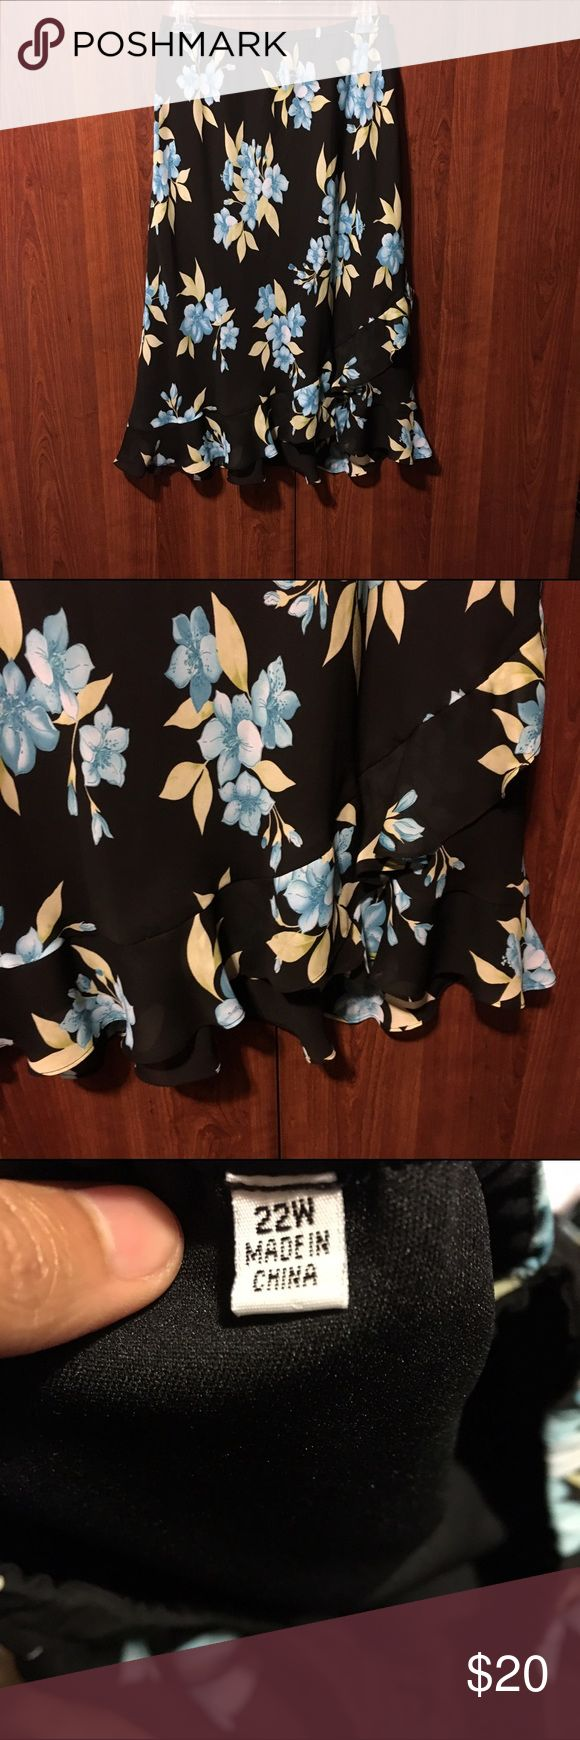 ❤Tiered floral skirt Tiered floral skirt. Good condition. Size 22W. Has been altered in the back as pictured. Price is negotiable and ships next day. Skirts